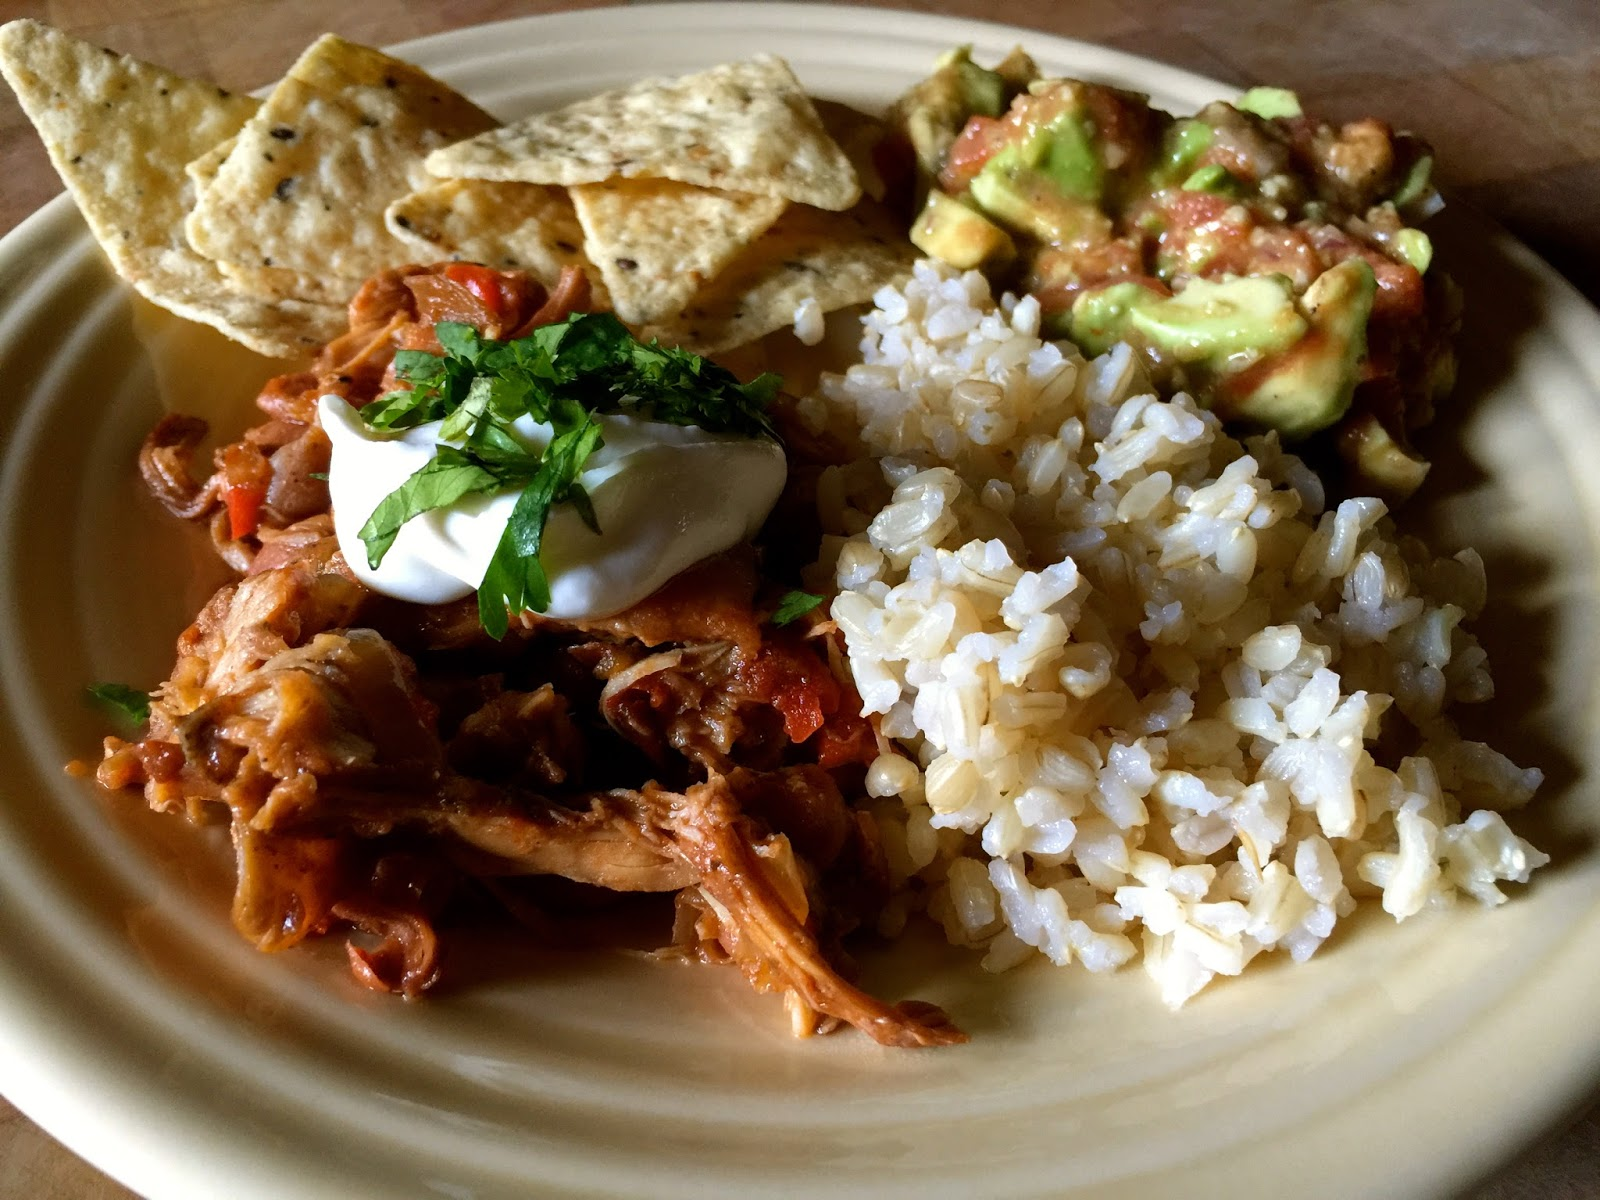 ... Recipes From Alice's Kitchen: Slow-Cooked Tex-Mex Chicken and Beans